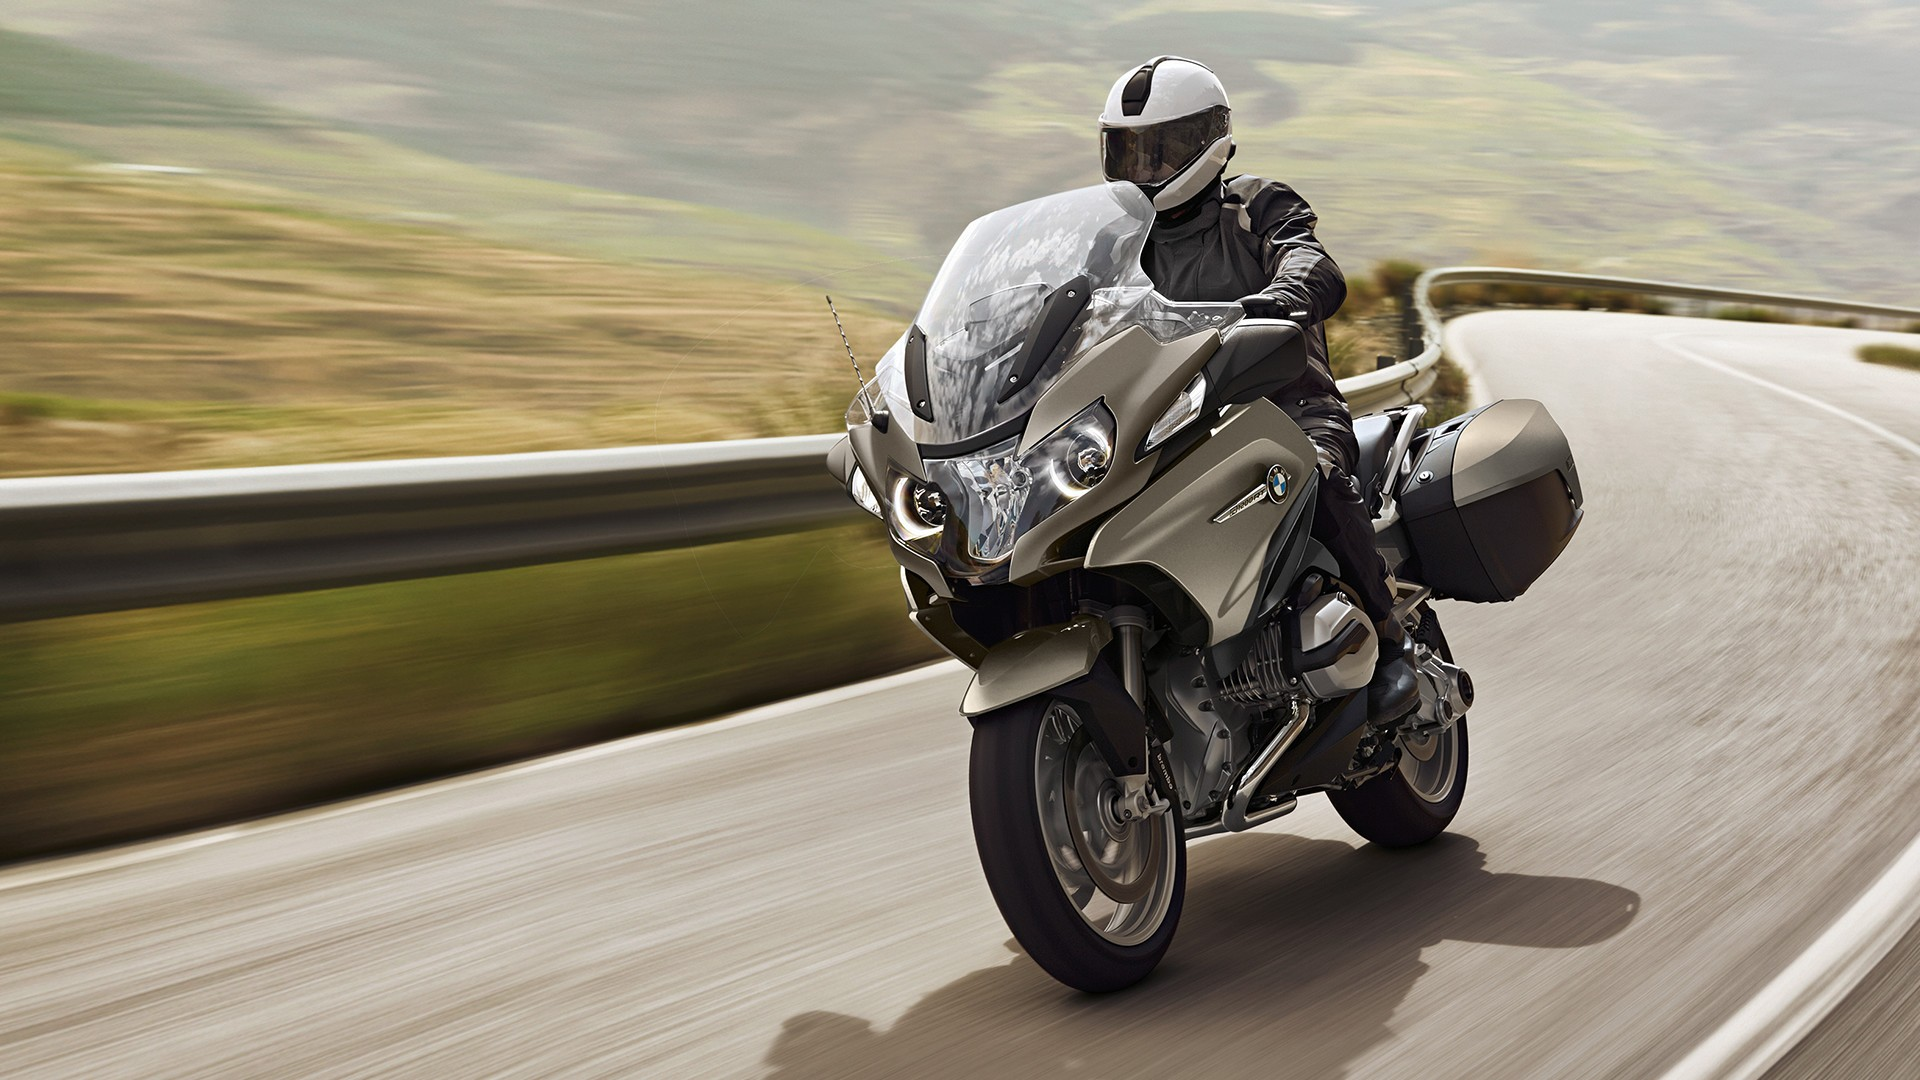 BMW R1200RT images #17816